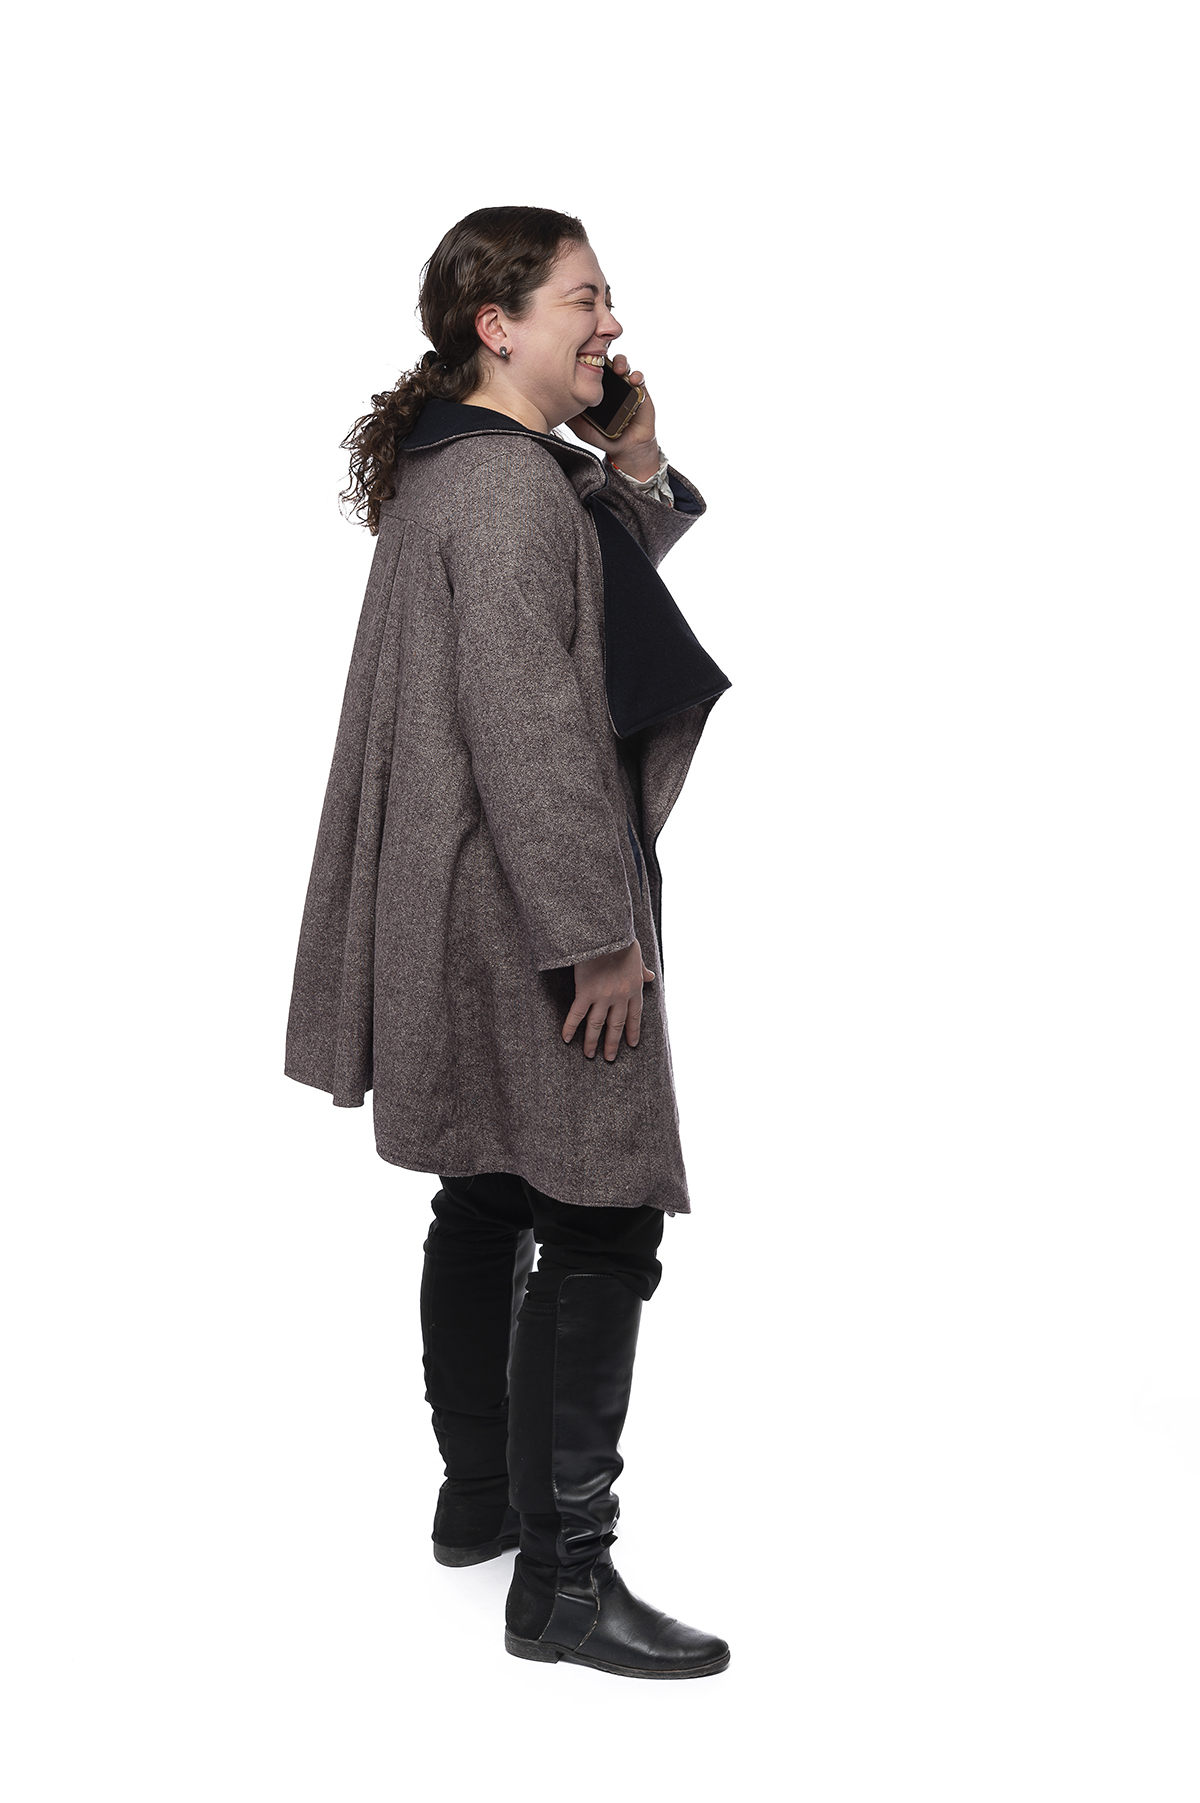 A functional clothing design of a winter coat.